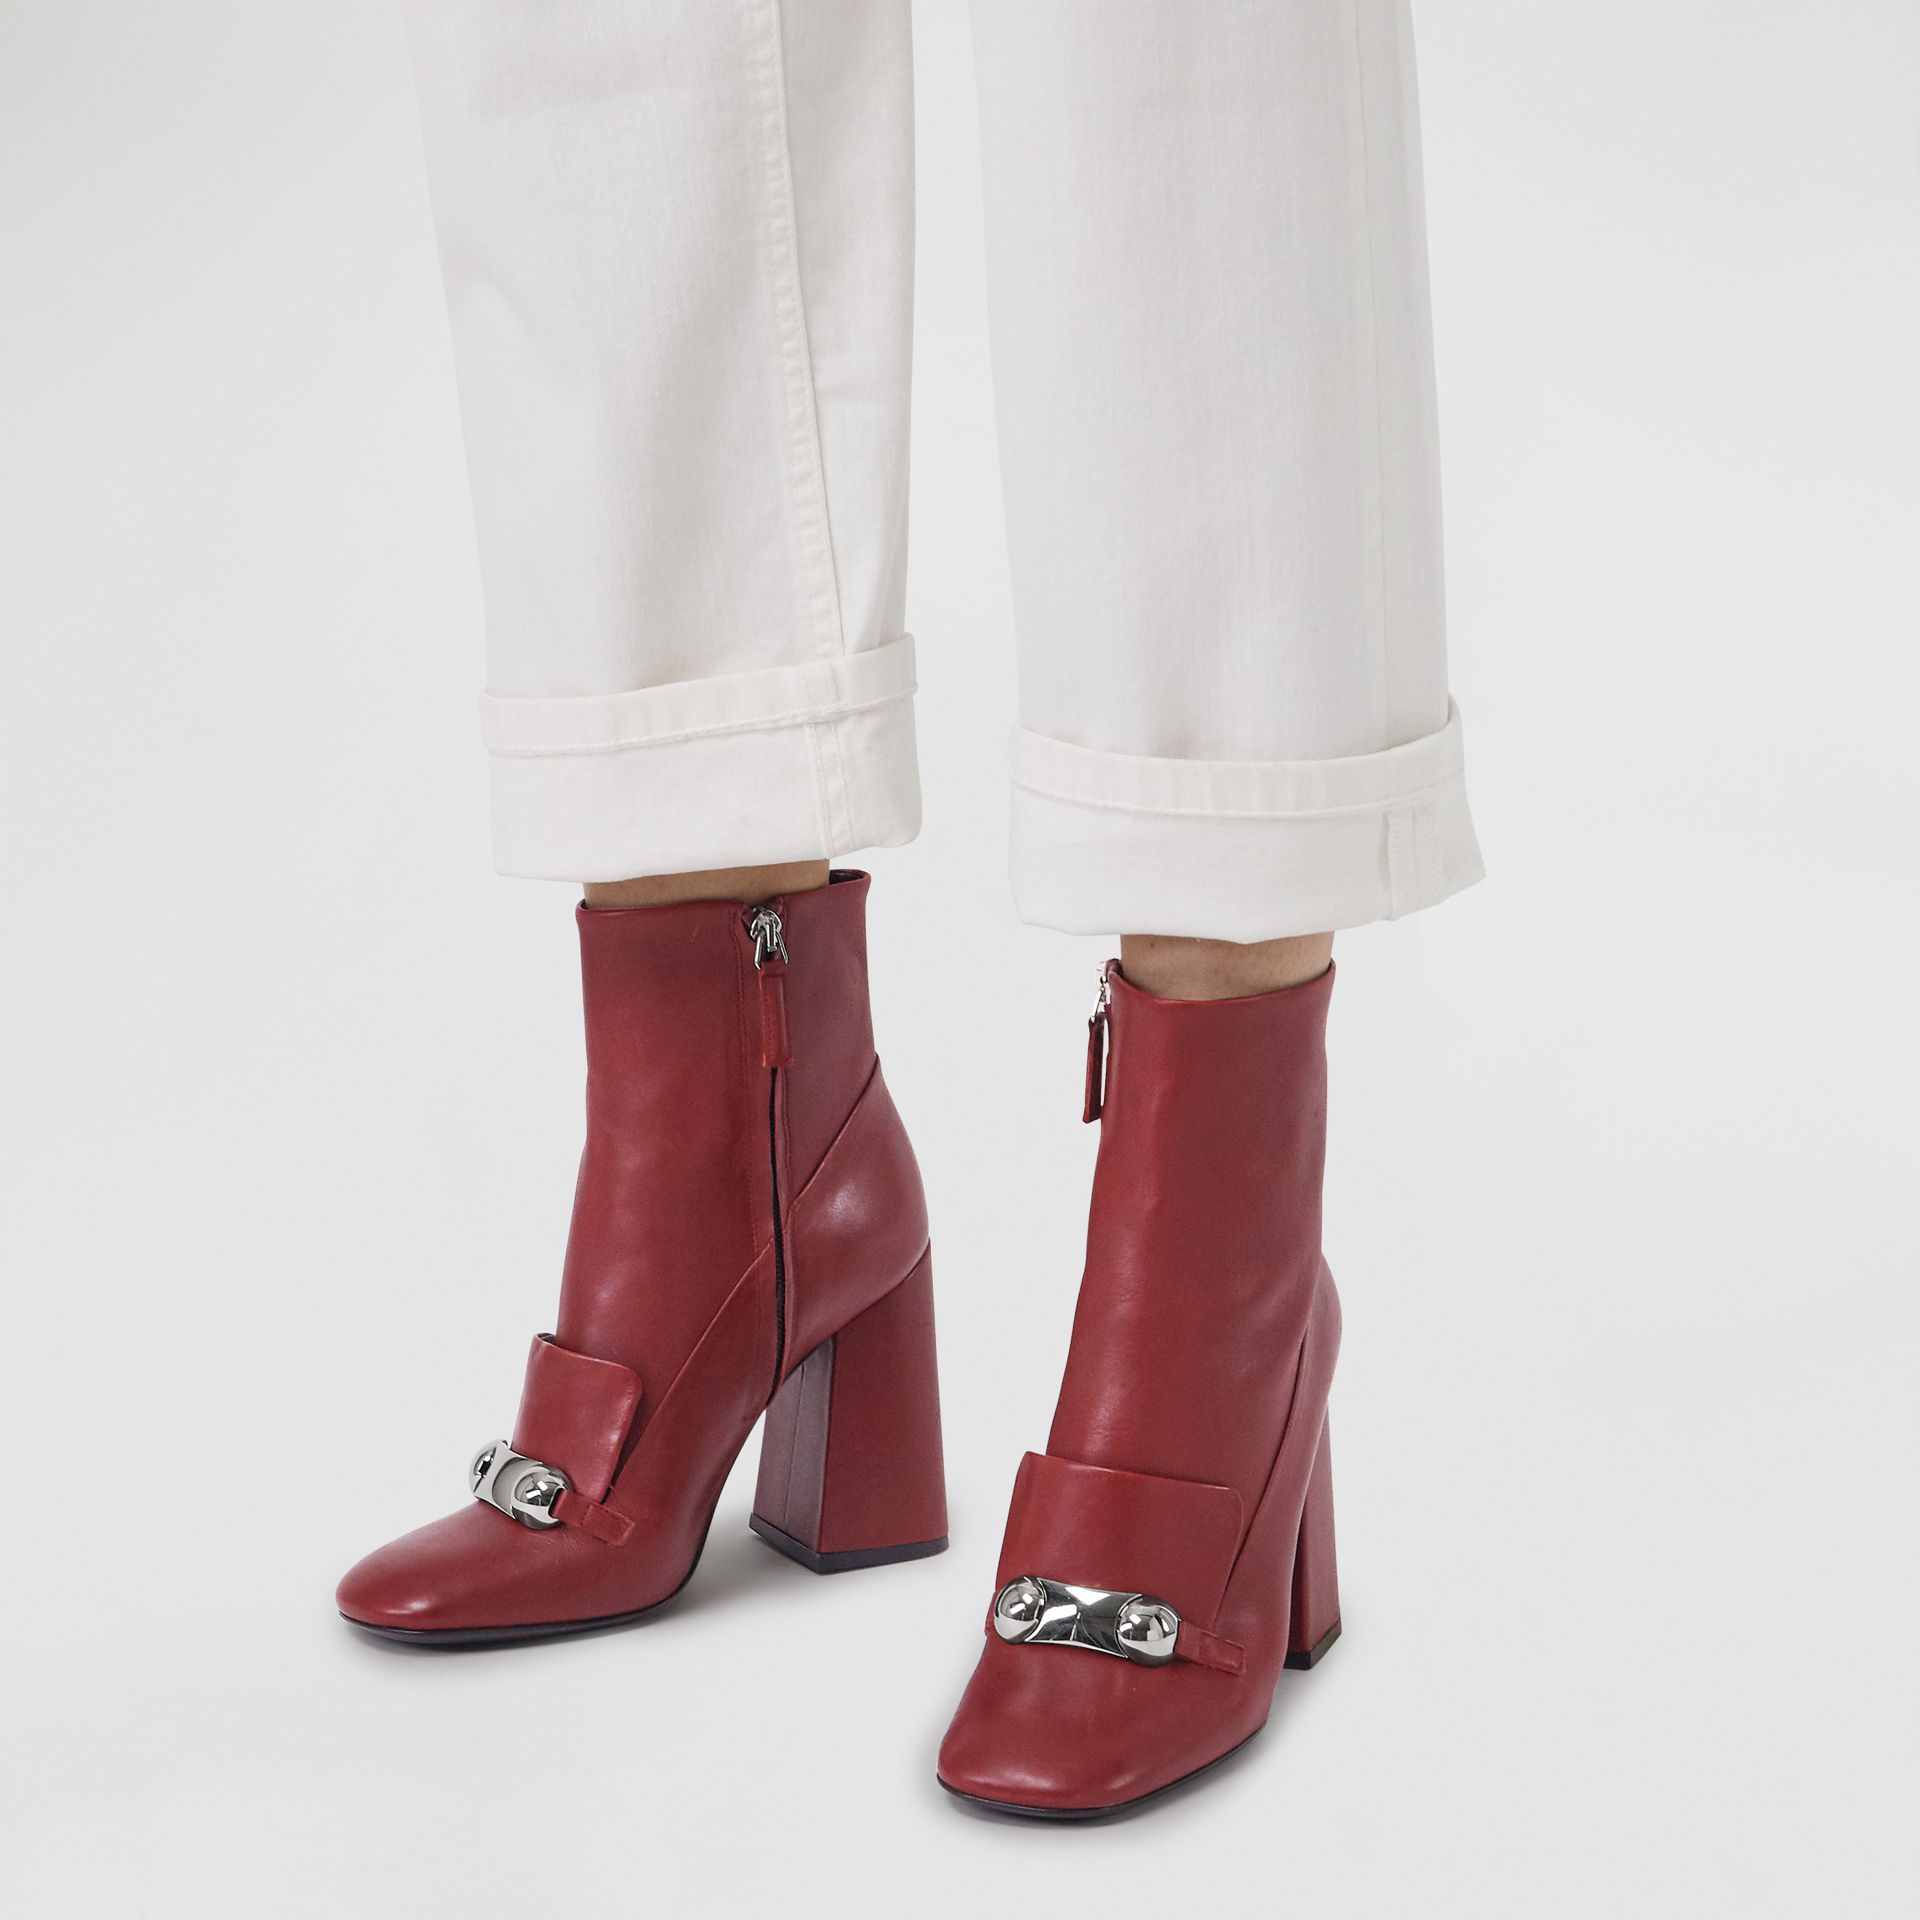 Studded Bar Detail Leather Ankle Boots in Bordeaux - Women | Burberry United States - gallery image 2